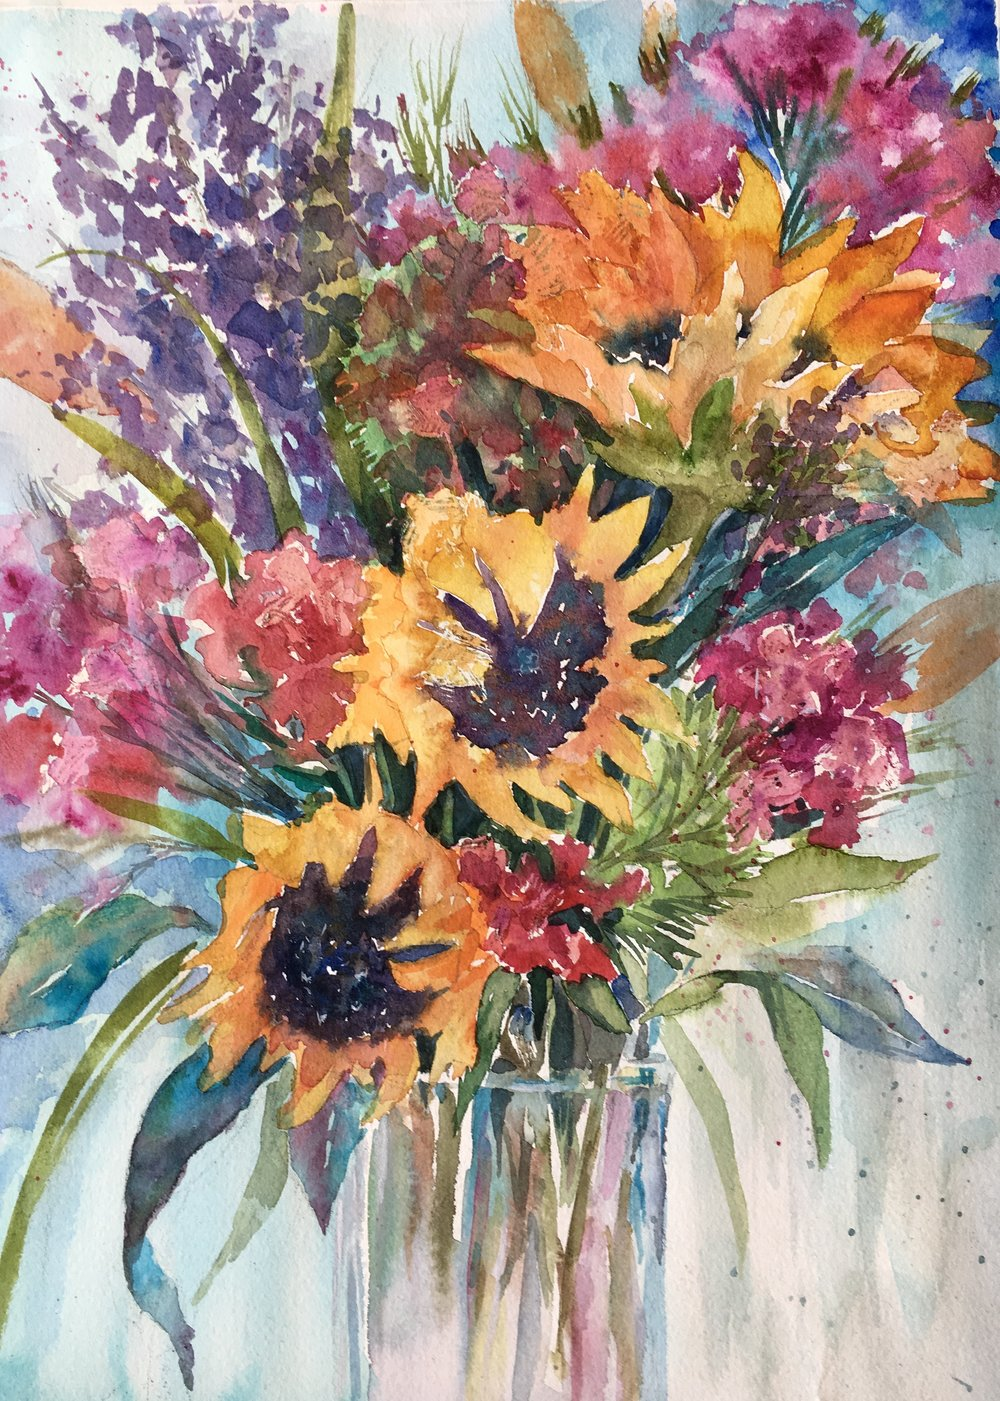 """Sunflower's joy"" 16x20, Watercolor on watercolor paper by Svetlana Howe"